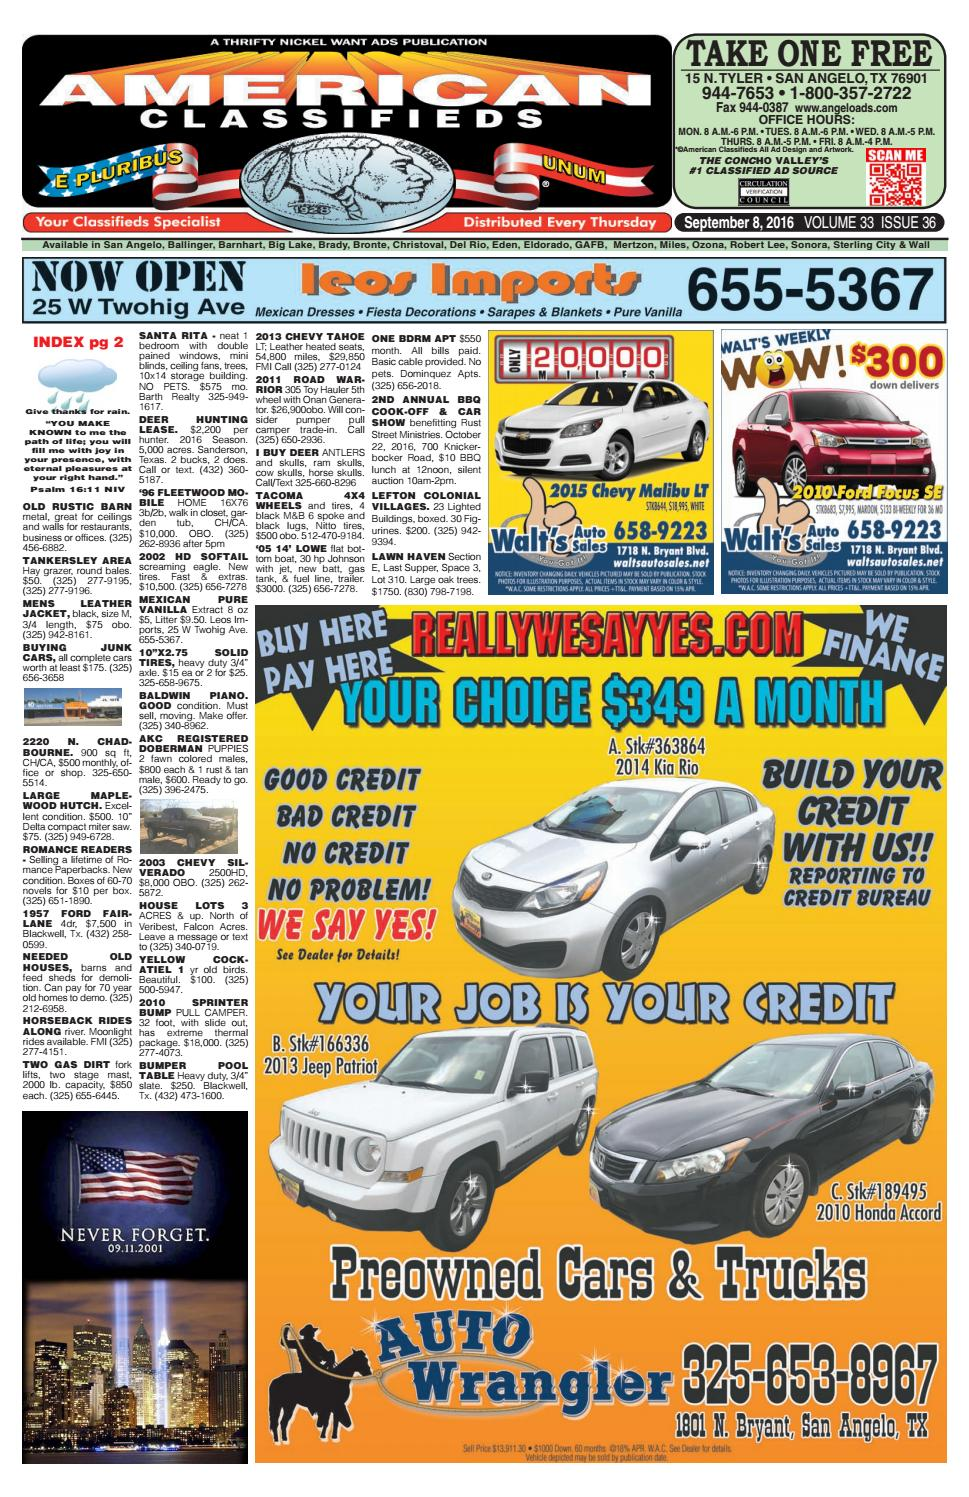 San Angelo American Classifieds 090816 by San Angelo American Classifieds -  issuu